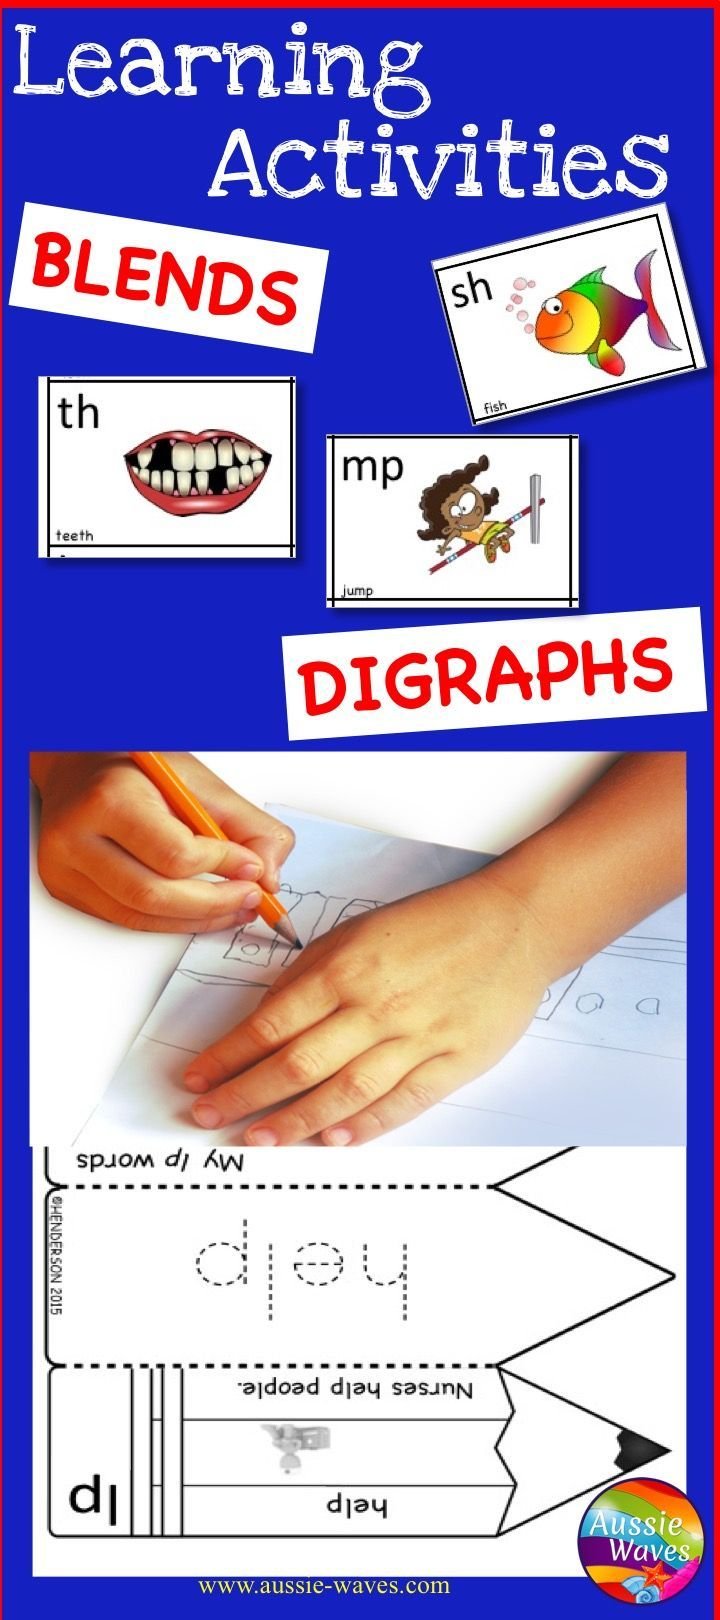 Blends and Digraphs ANCHOR CHARTS and WORKSHEETS fun activities to help learning PHONICS fun!